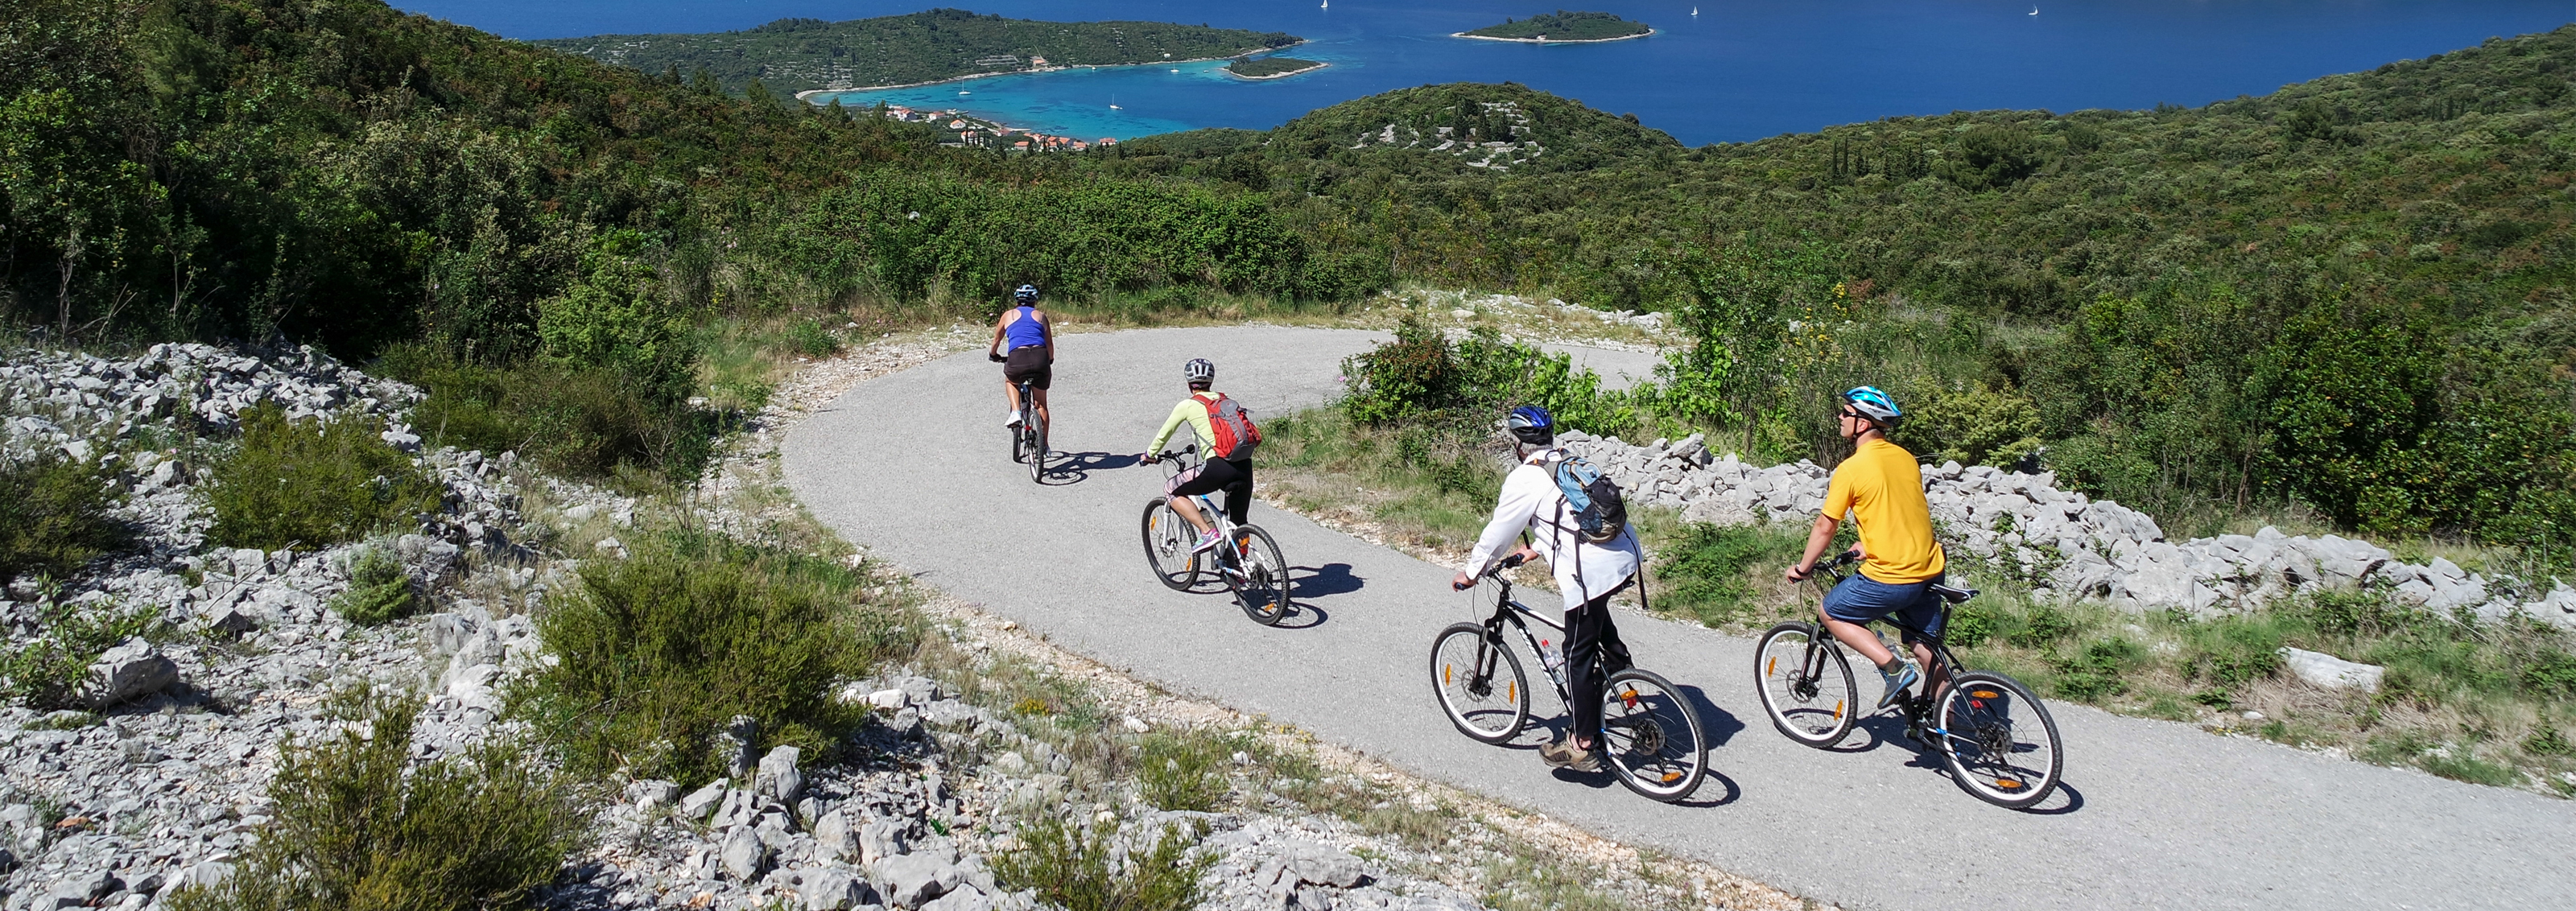 Cycling the Dalmatian Coast